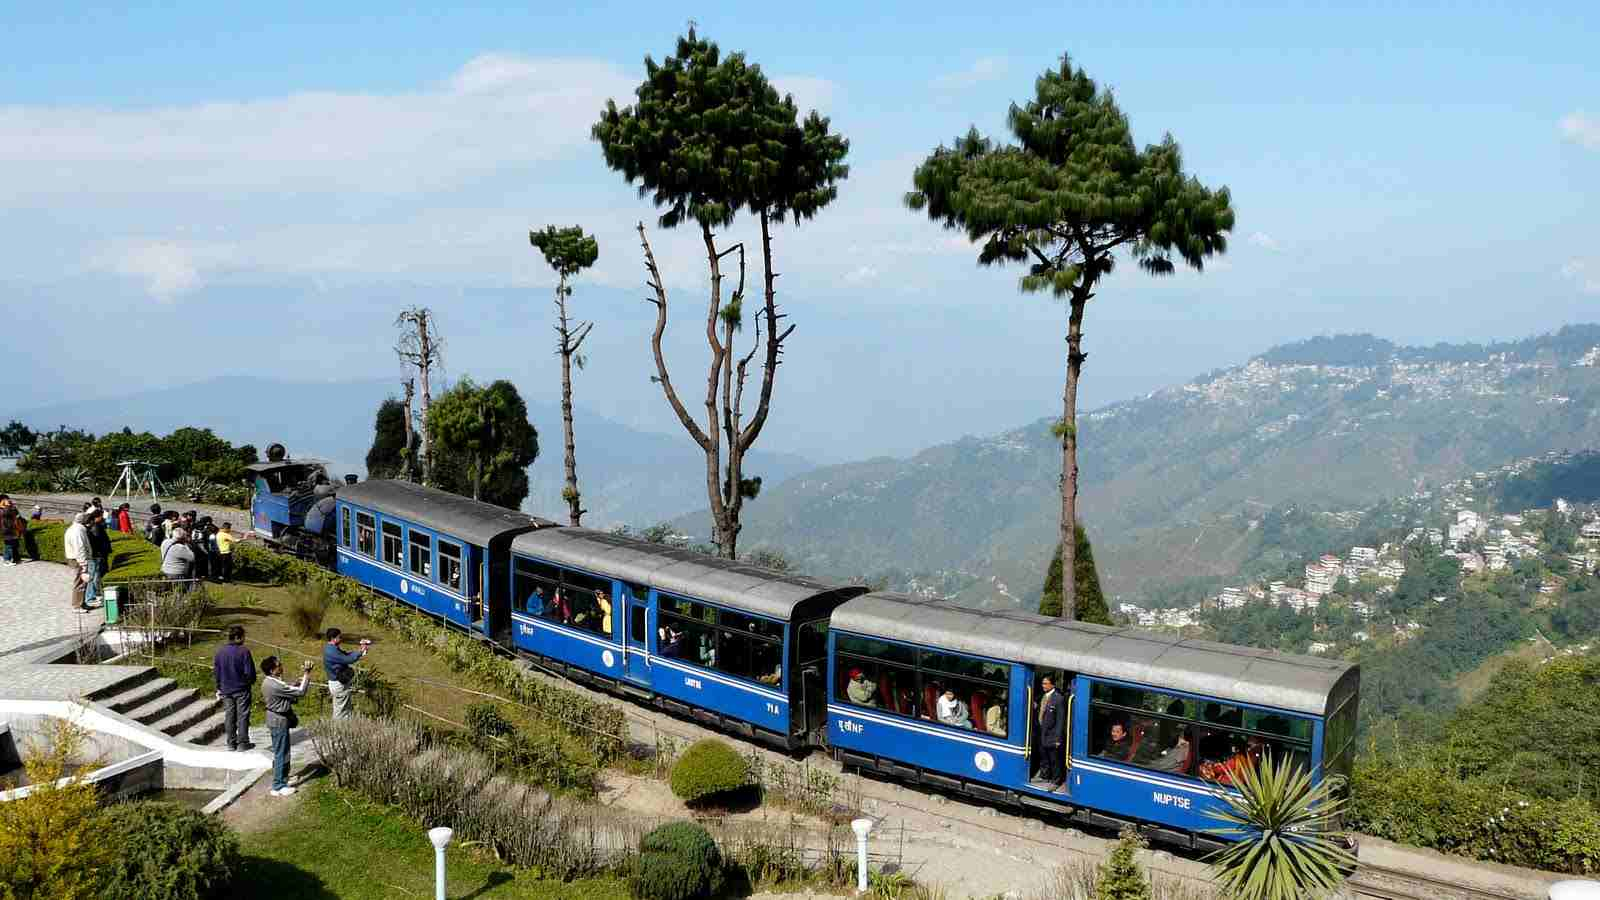 Train Ride In Darjeeling - romantic date ideas